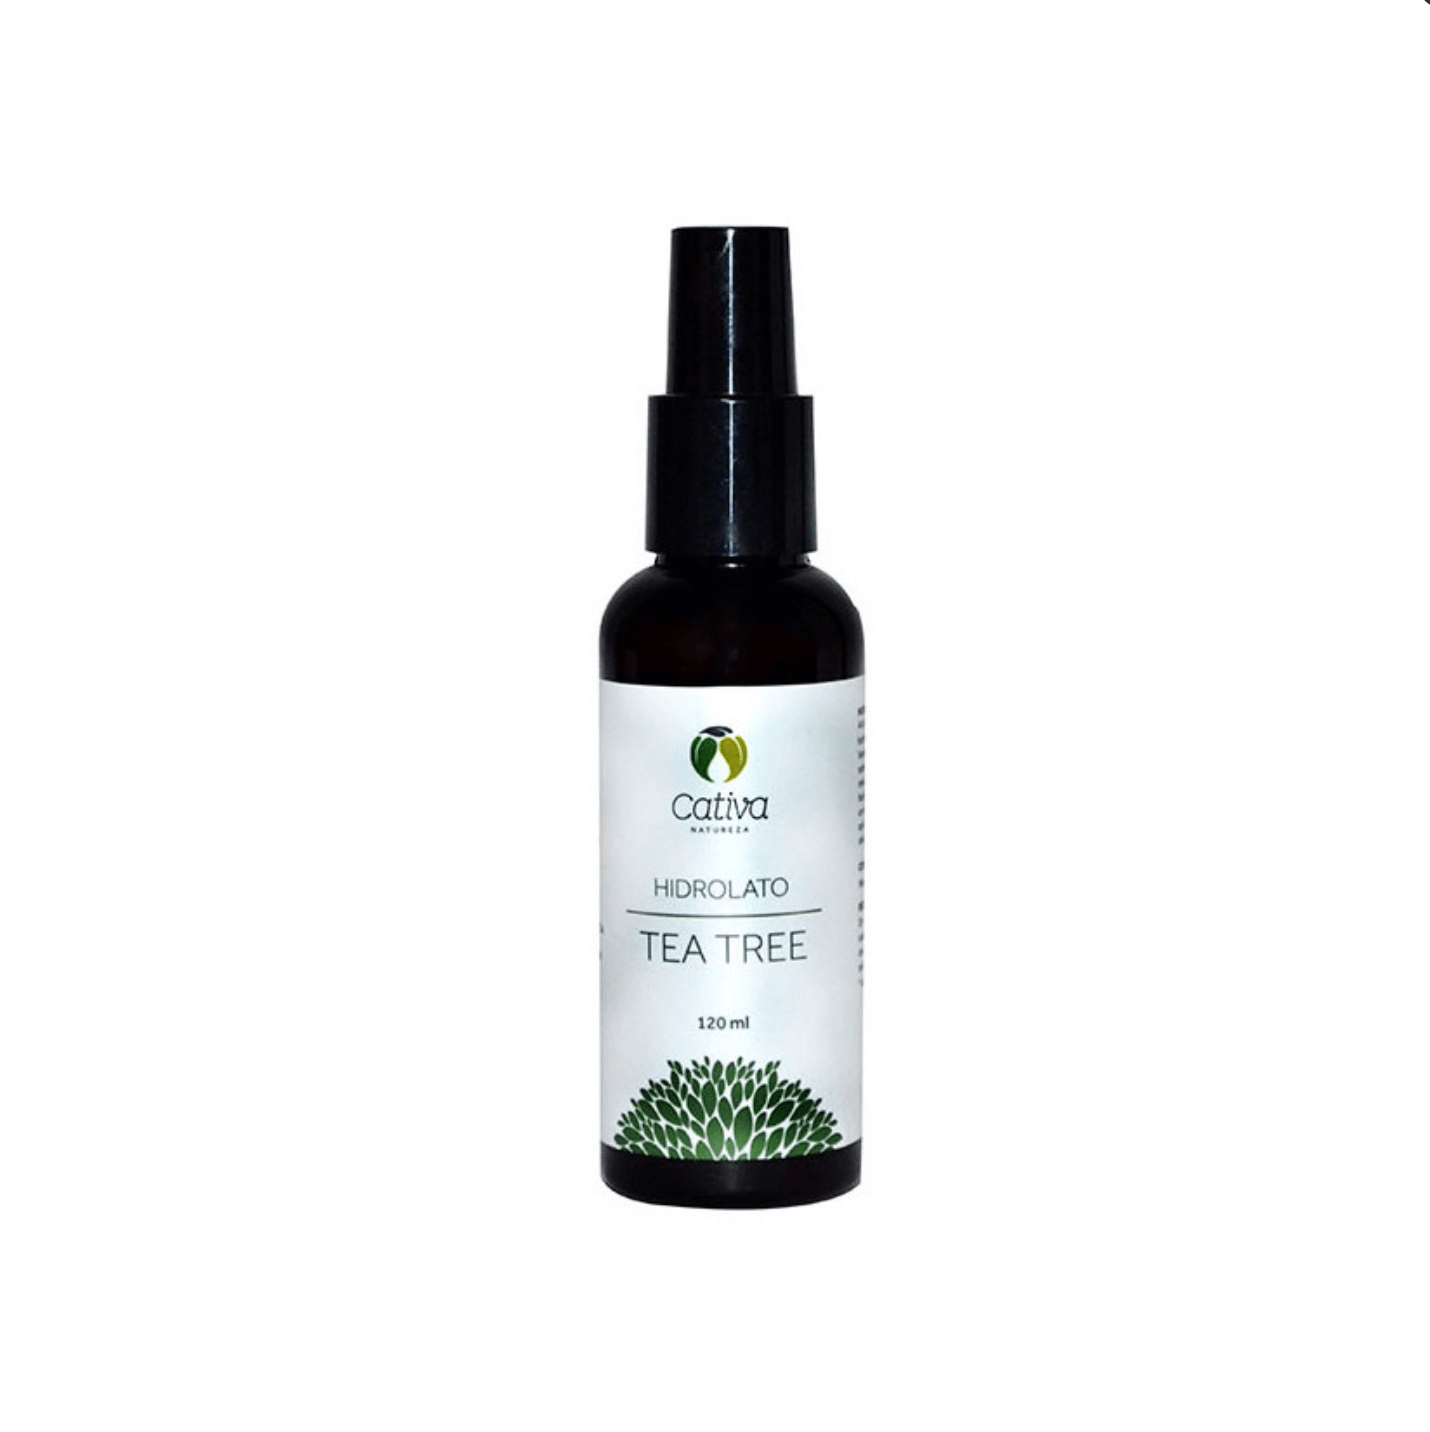 Hidrolato - Tea Tree - Cativa Natureza